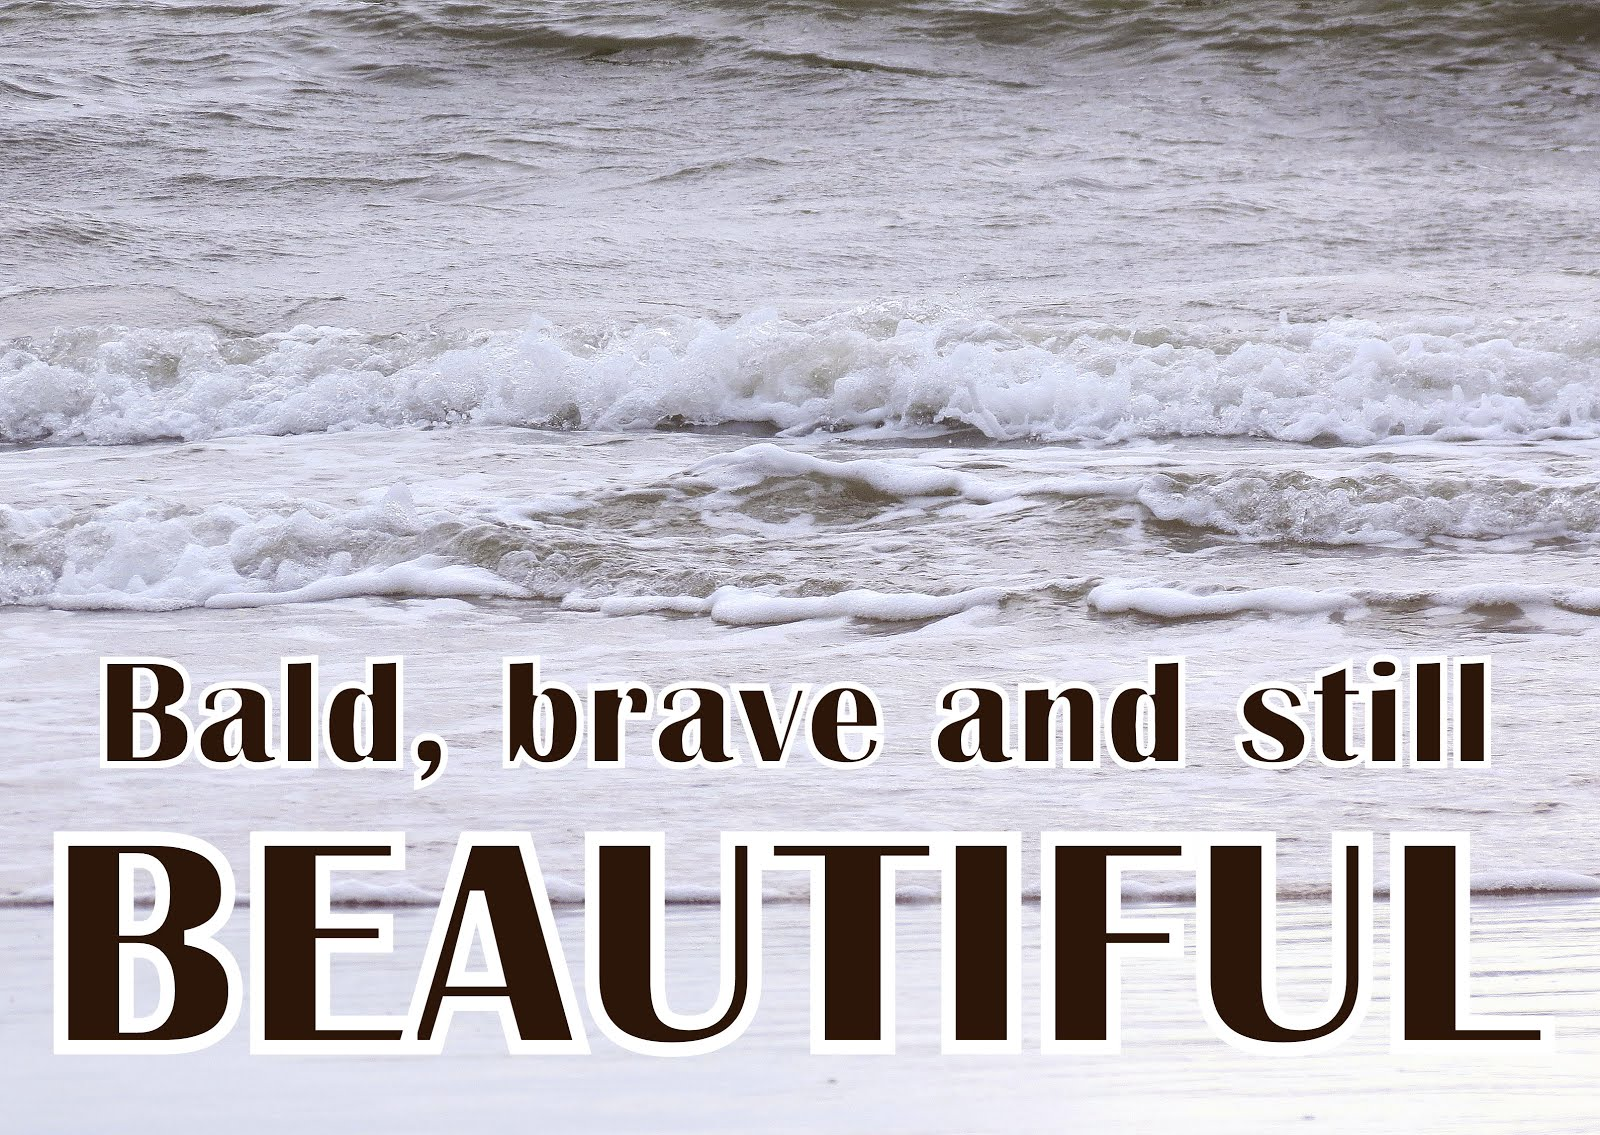 Bald, brave and still beautiful.